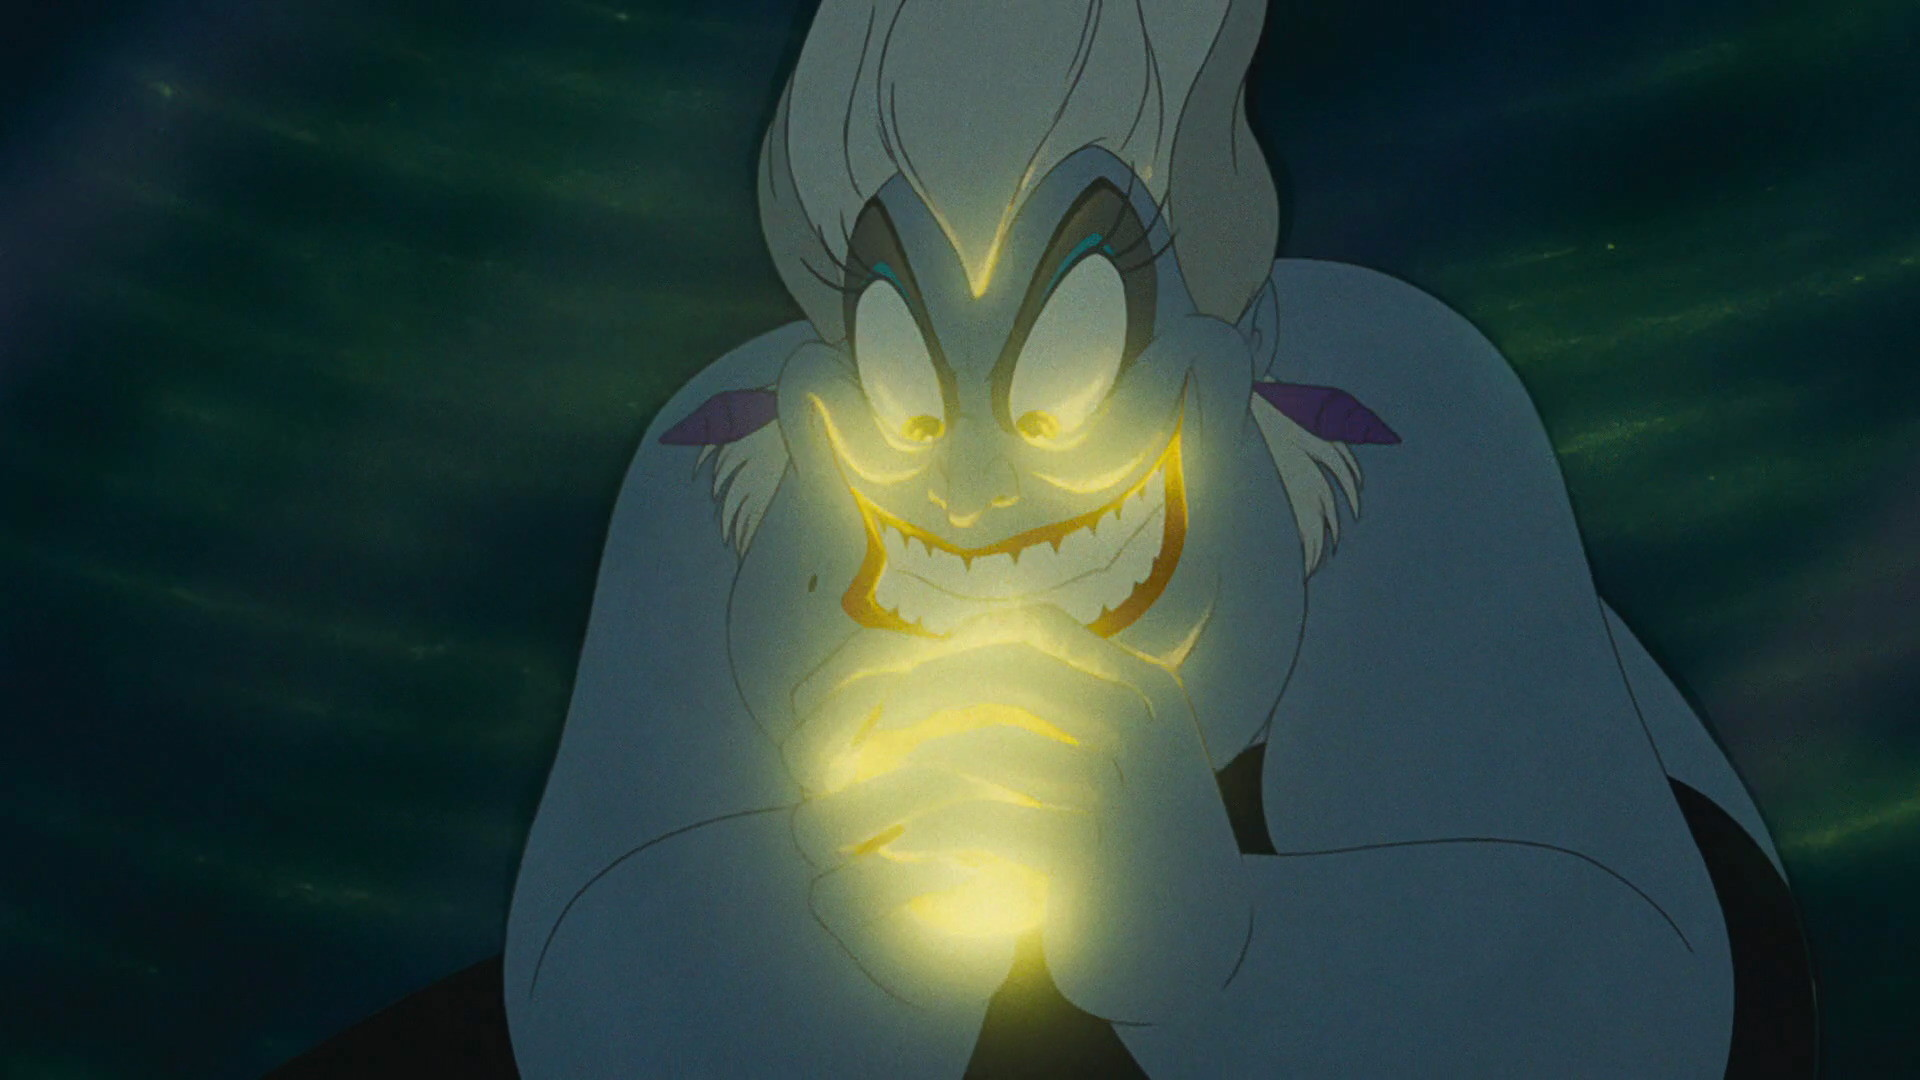 Res: 1920x1080, The Little Mermaid - Poor Unfortunate Souls - Ursula's Evil Smile with a  Glow.jpg